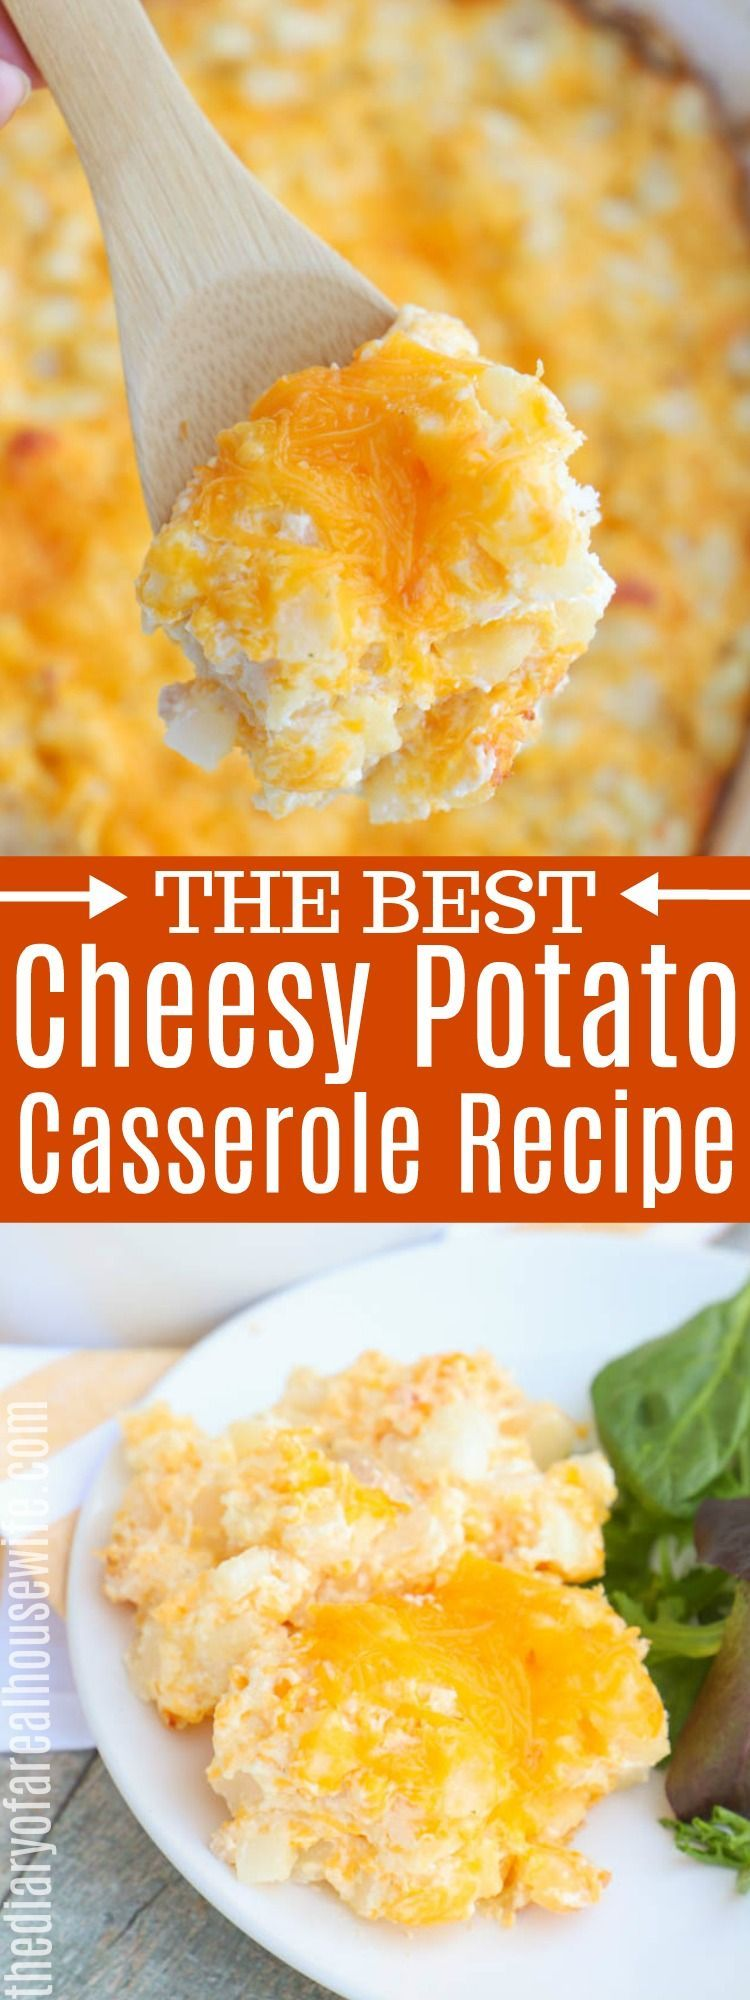 Cheesy Potato Casserole - The Diary of a Real Housewife